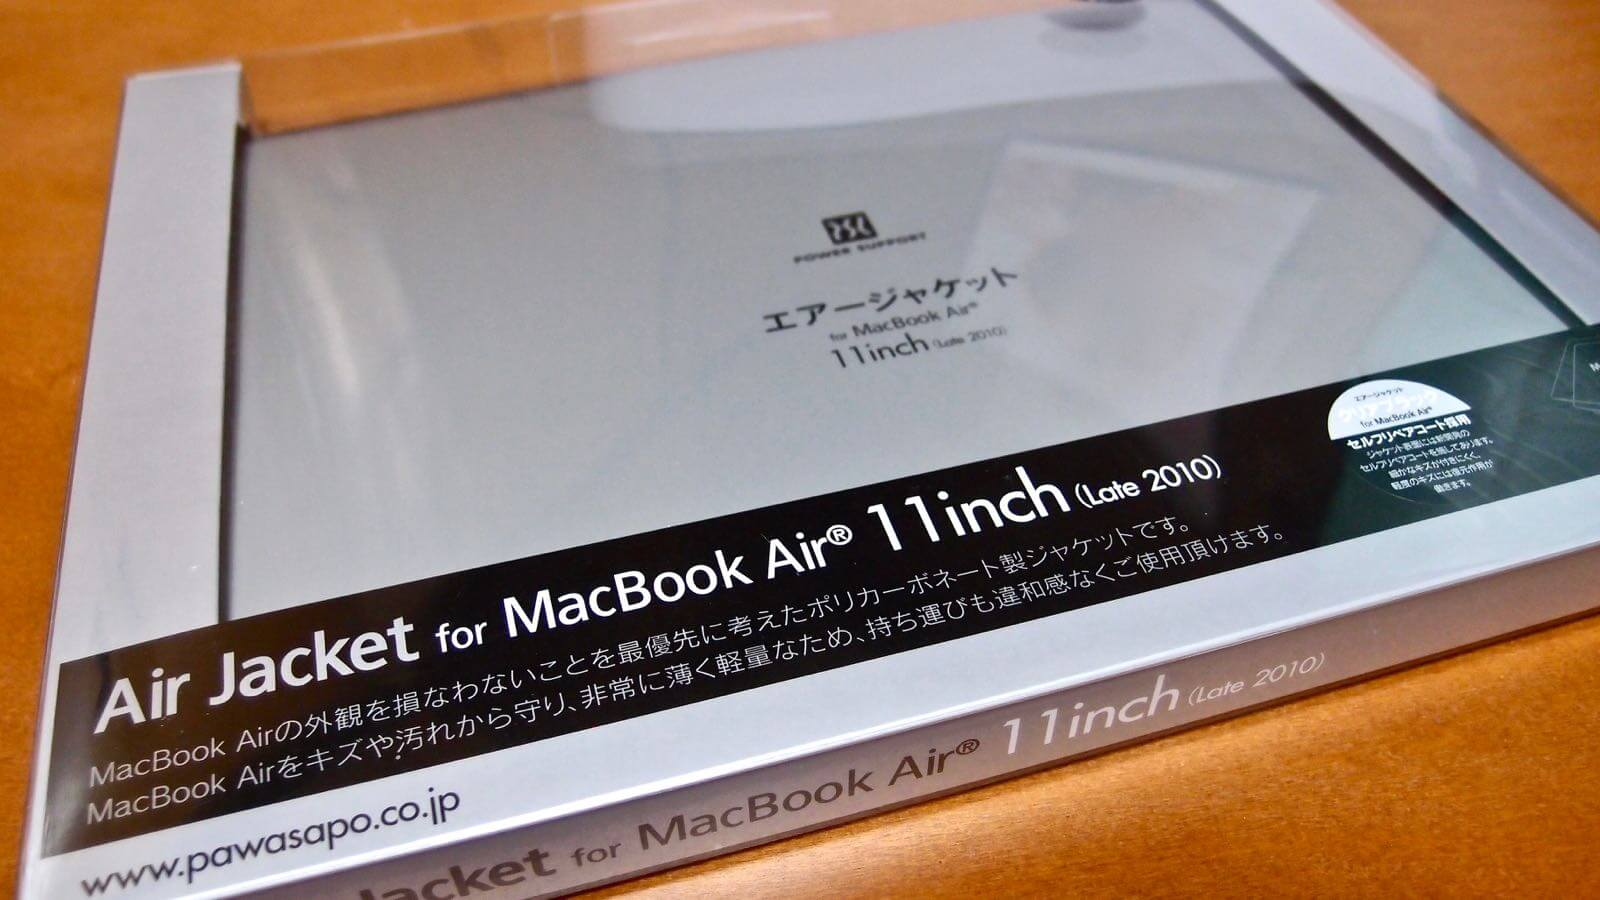 0060 Air Jacket for Macbook Air11inch Review 01